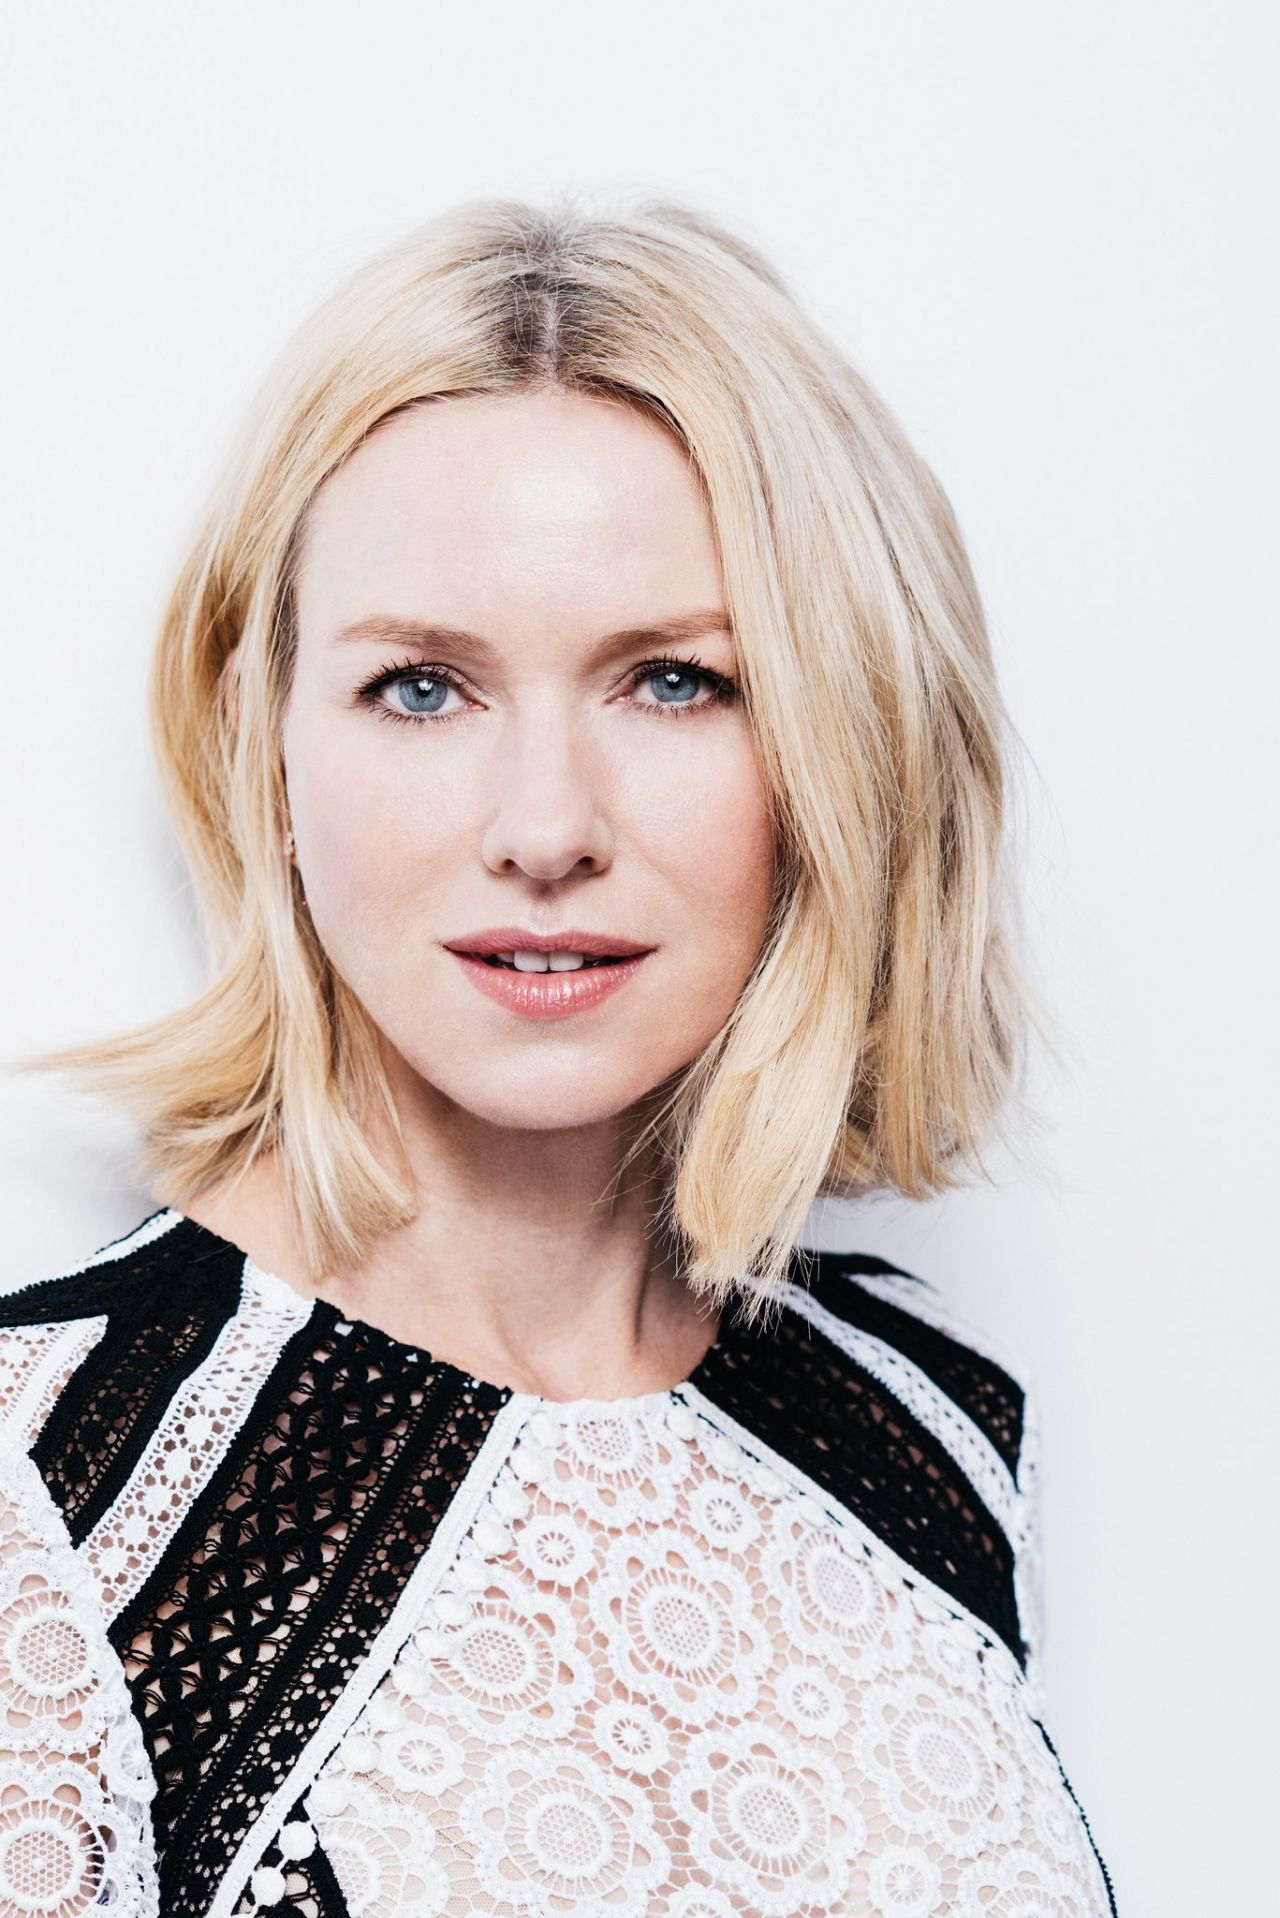 Naomi Watts Photoshoot, TIFF 2015 Naomi Watts